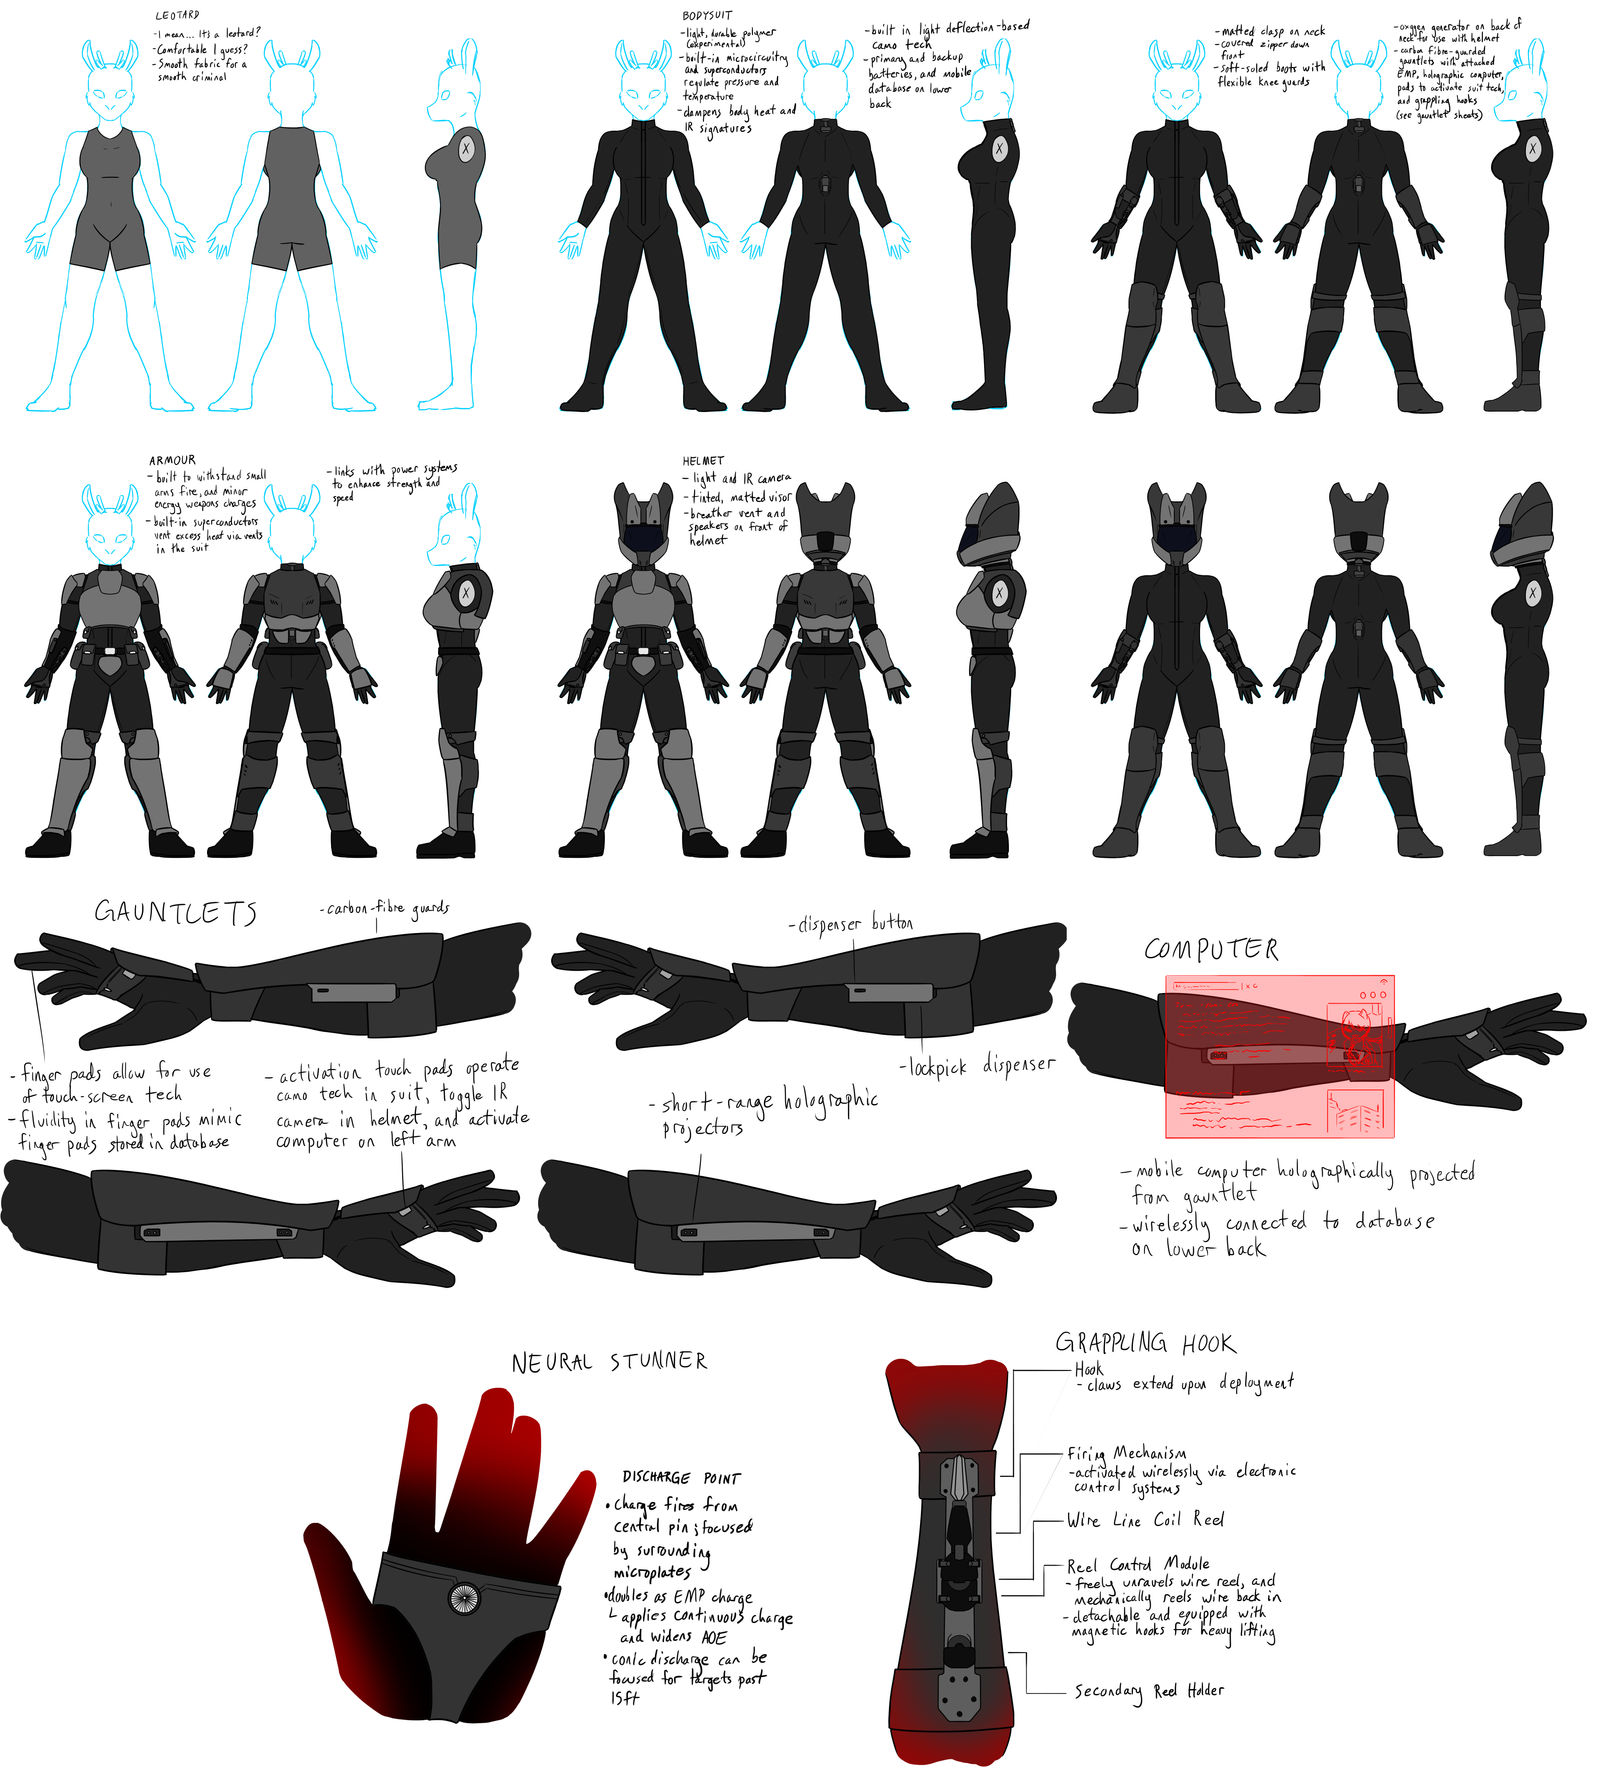 Chinook Stealth Suit Reference by Crosis278 on DeviantArt